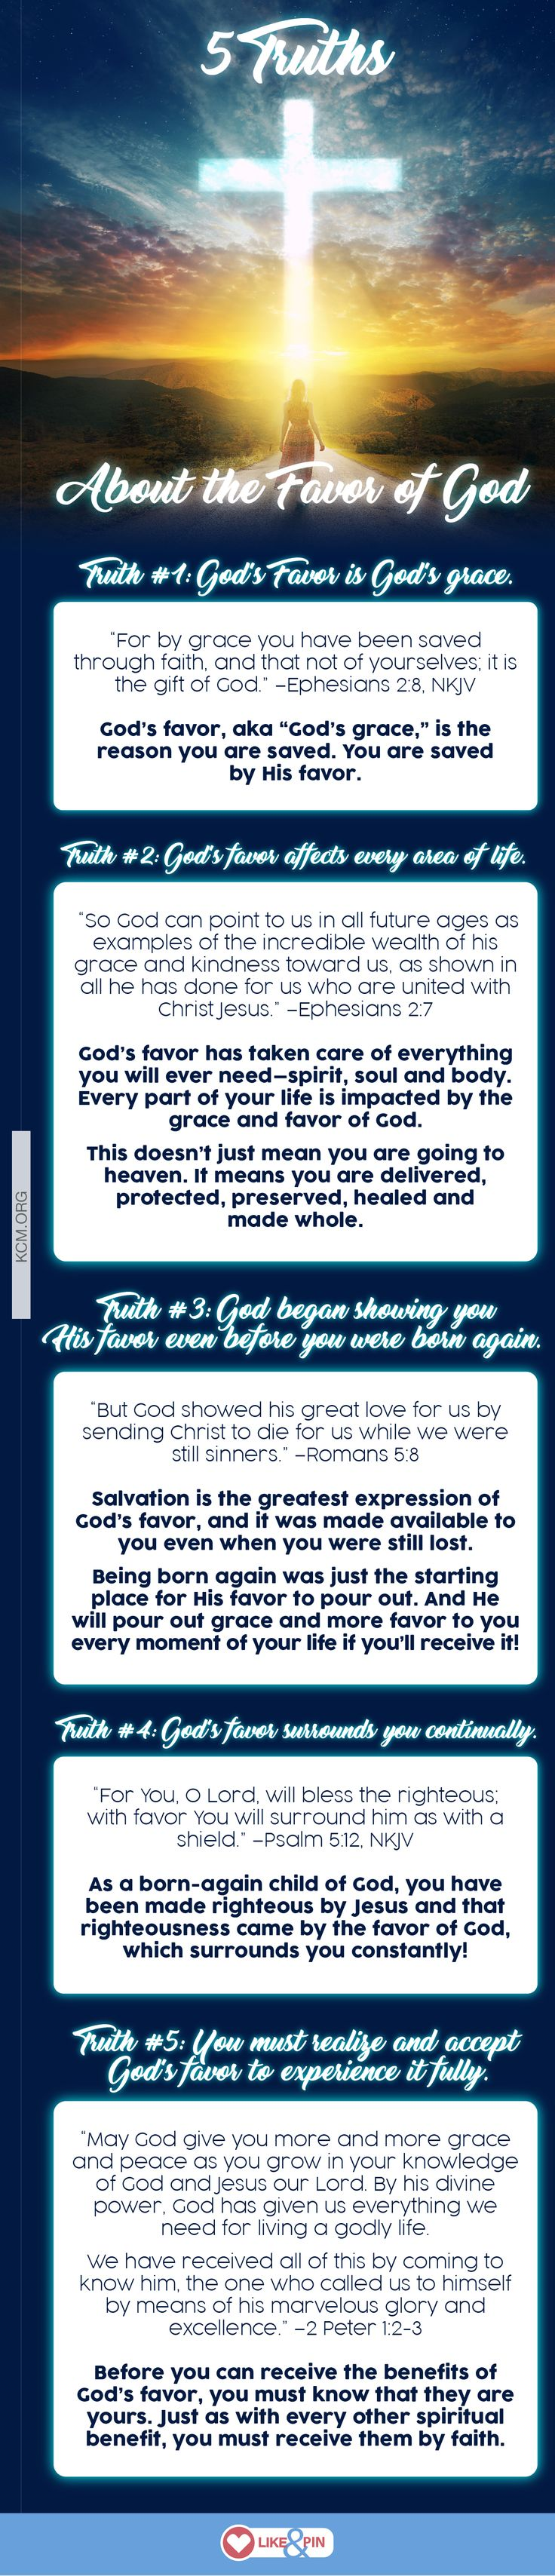 Before you can receive the benefits of God's favor, you must know that they are yours. Just as with every other spiritual benefit, you must receive them by faith. Here are 5 truths about the favor of God. For more info on this topic, read Gloria's article, God's Favor Will Chang Your Life here: http://kennethcopelandministries.org/gods-favor-will-change-life/